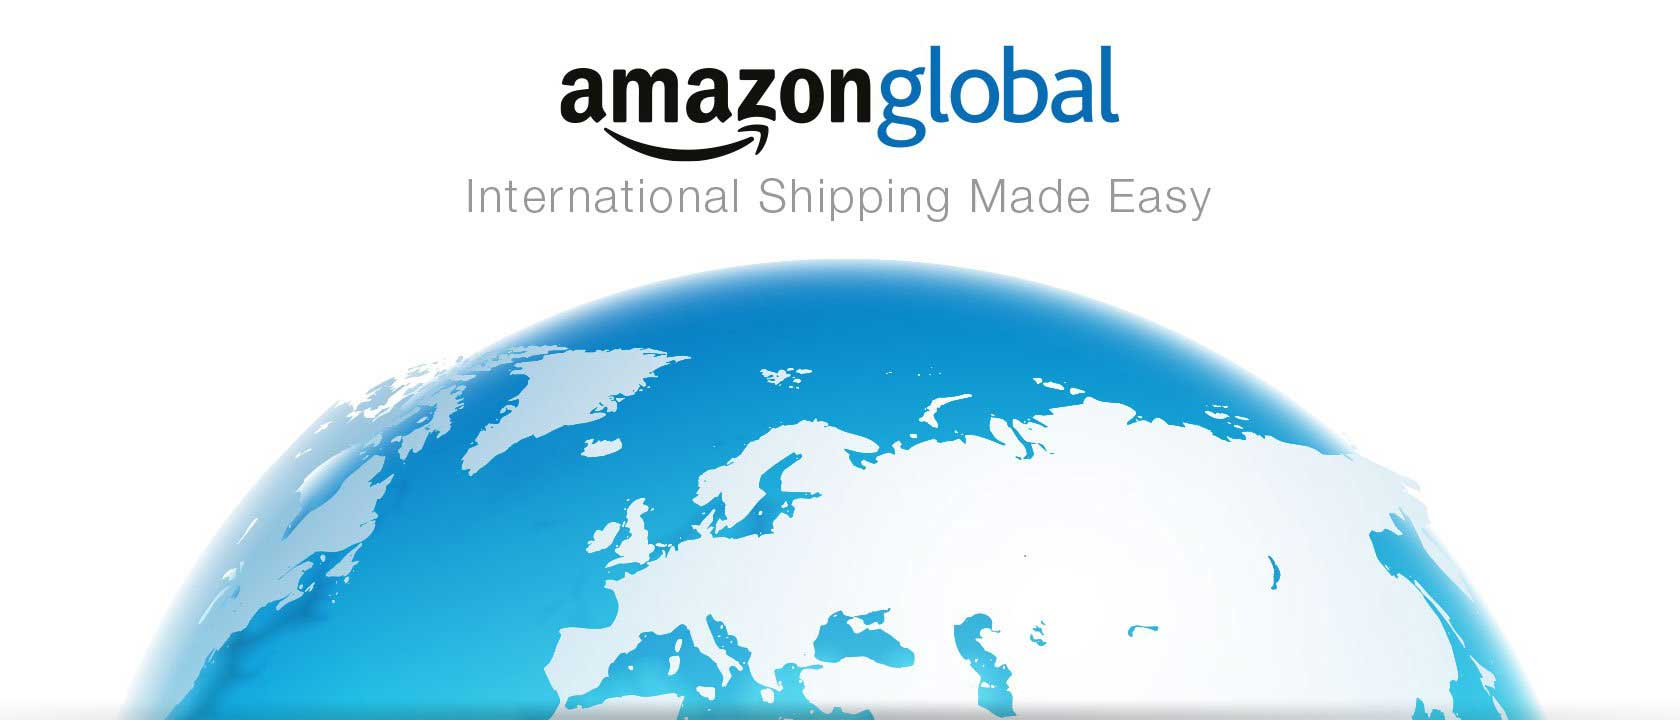 AmazonGlobal: Ordering Experience